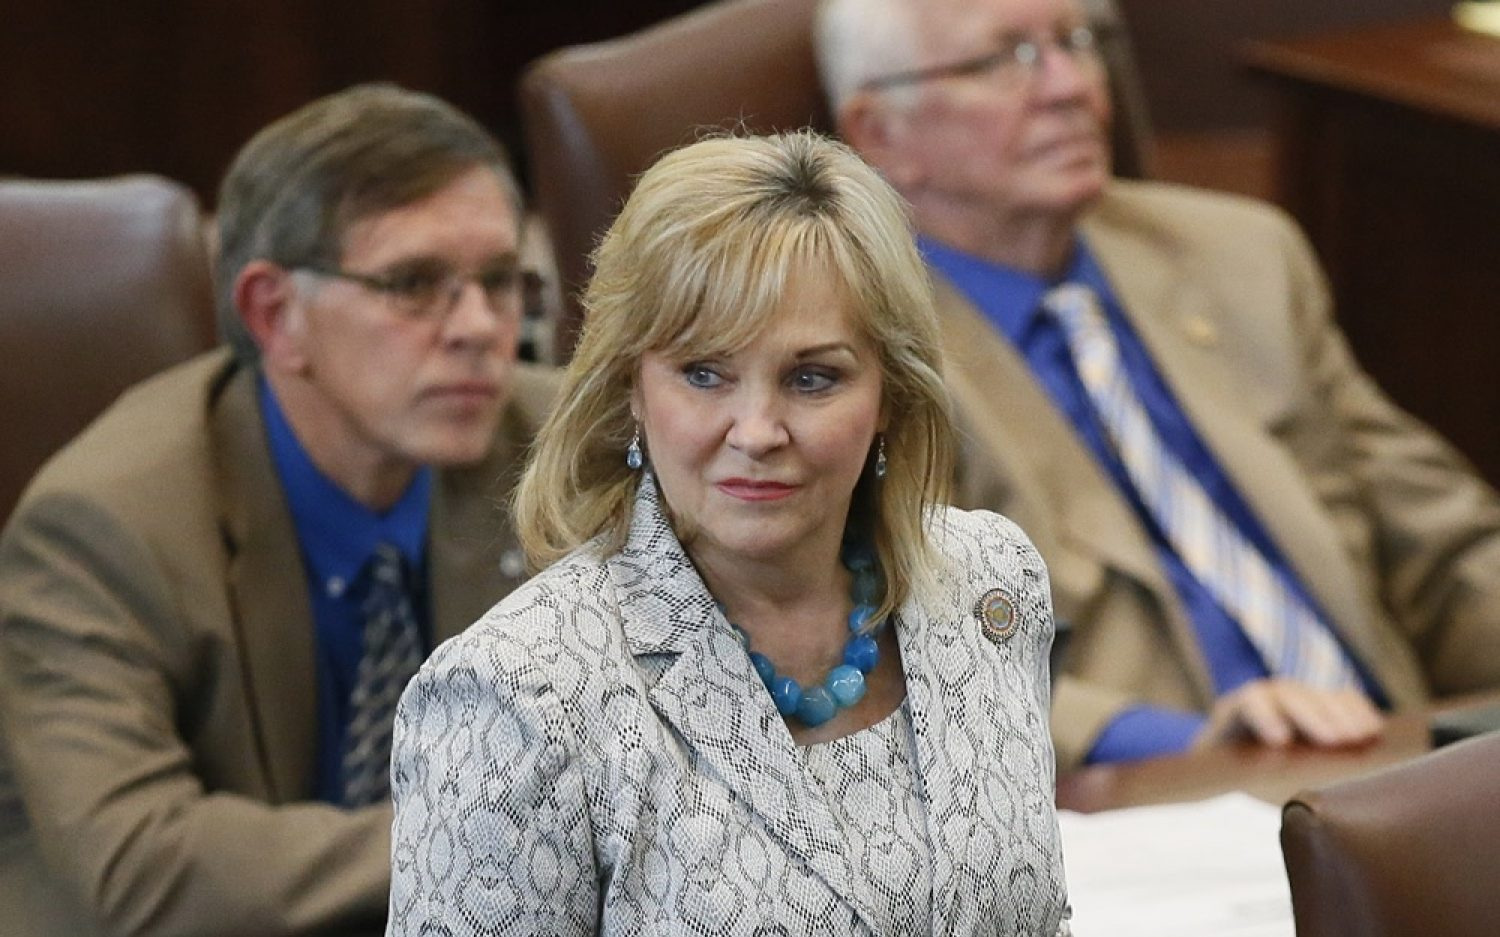 Oklahoma adopts law designed to create 'an abortion-free society'